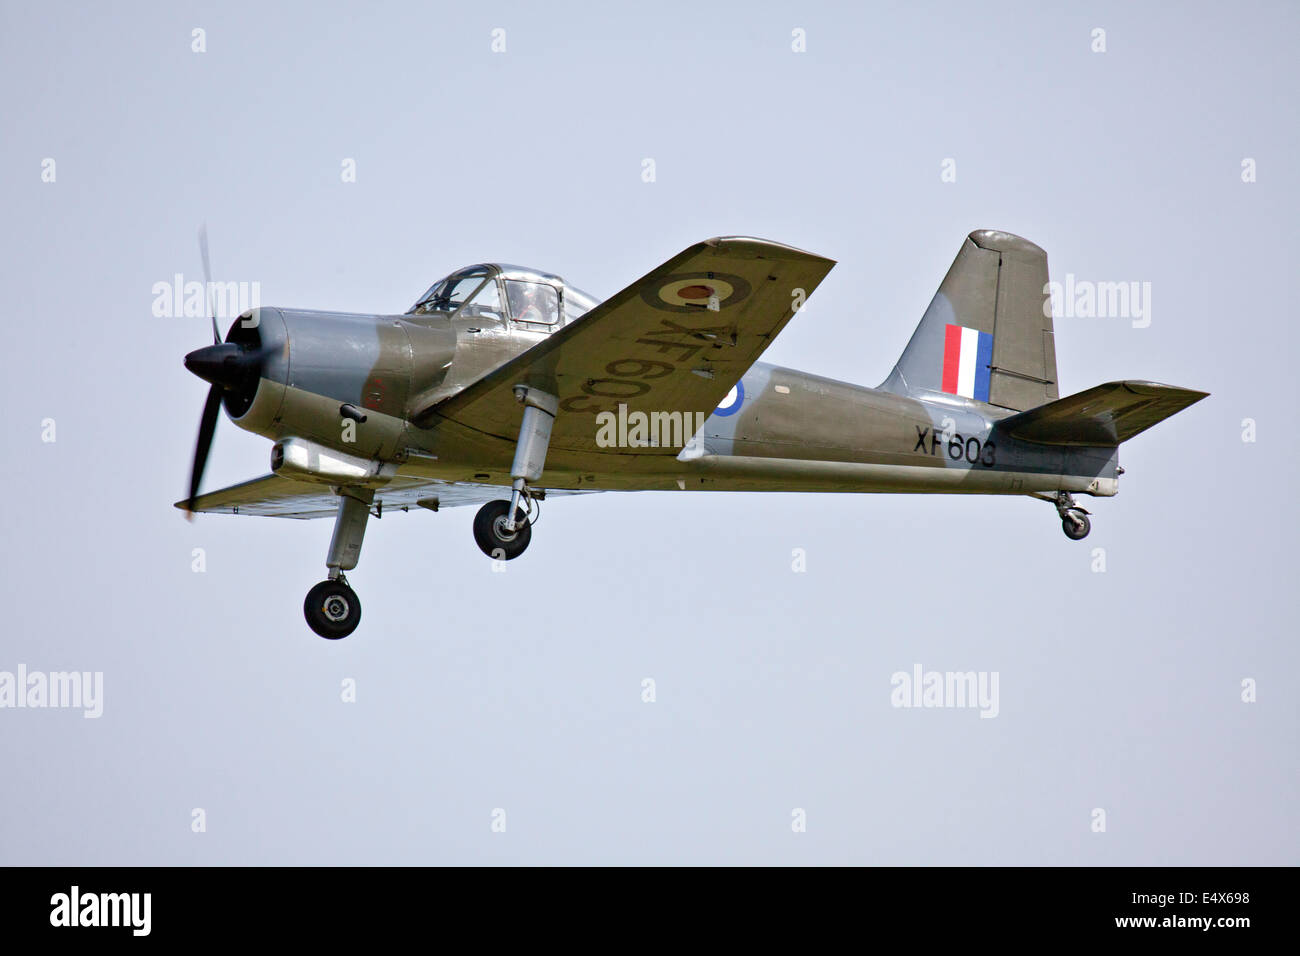 England UK circa 2014 An unamed pilot flies the Percival Provost - XF 603 airplane at a vintage aircraft pageant Stock Photo